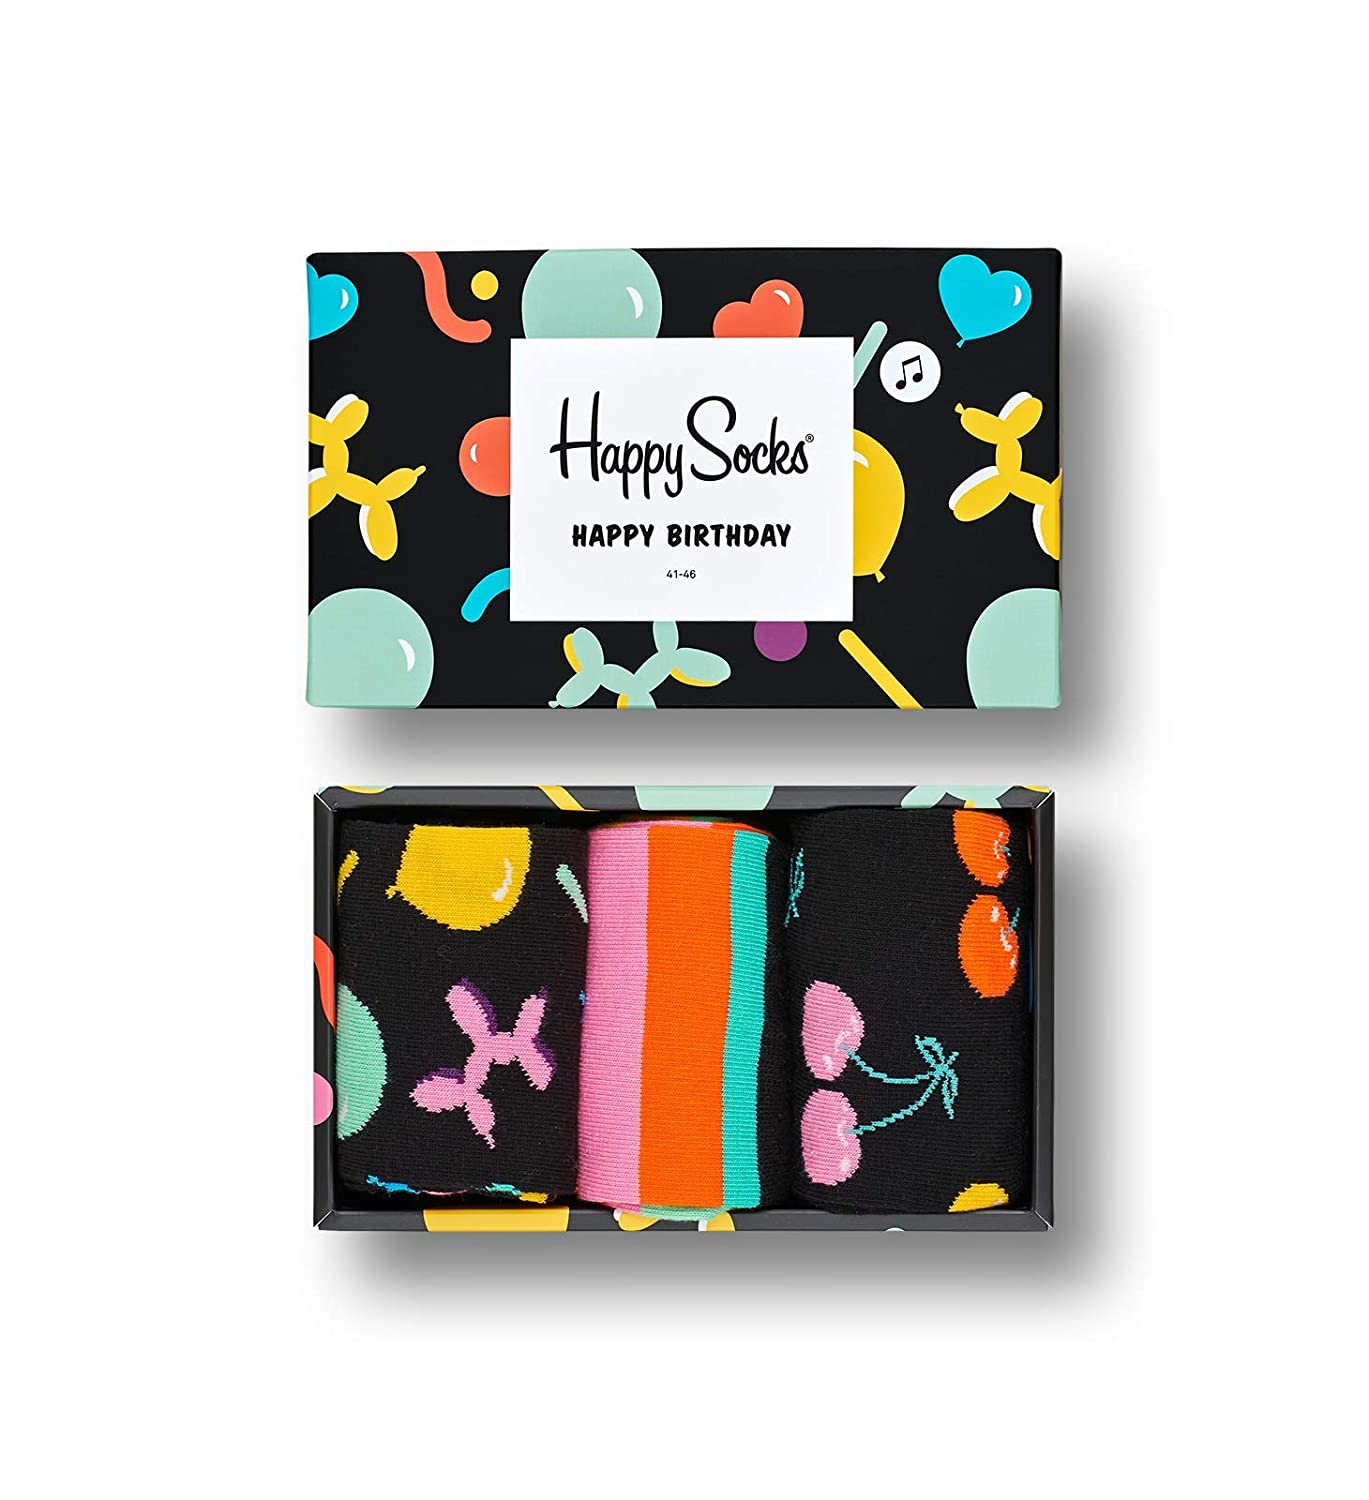 Amazon.com: Happy Socks - Assorted Colorful Premium Cotton Sock Gift Box for Men and Women: Clothing